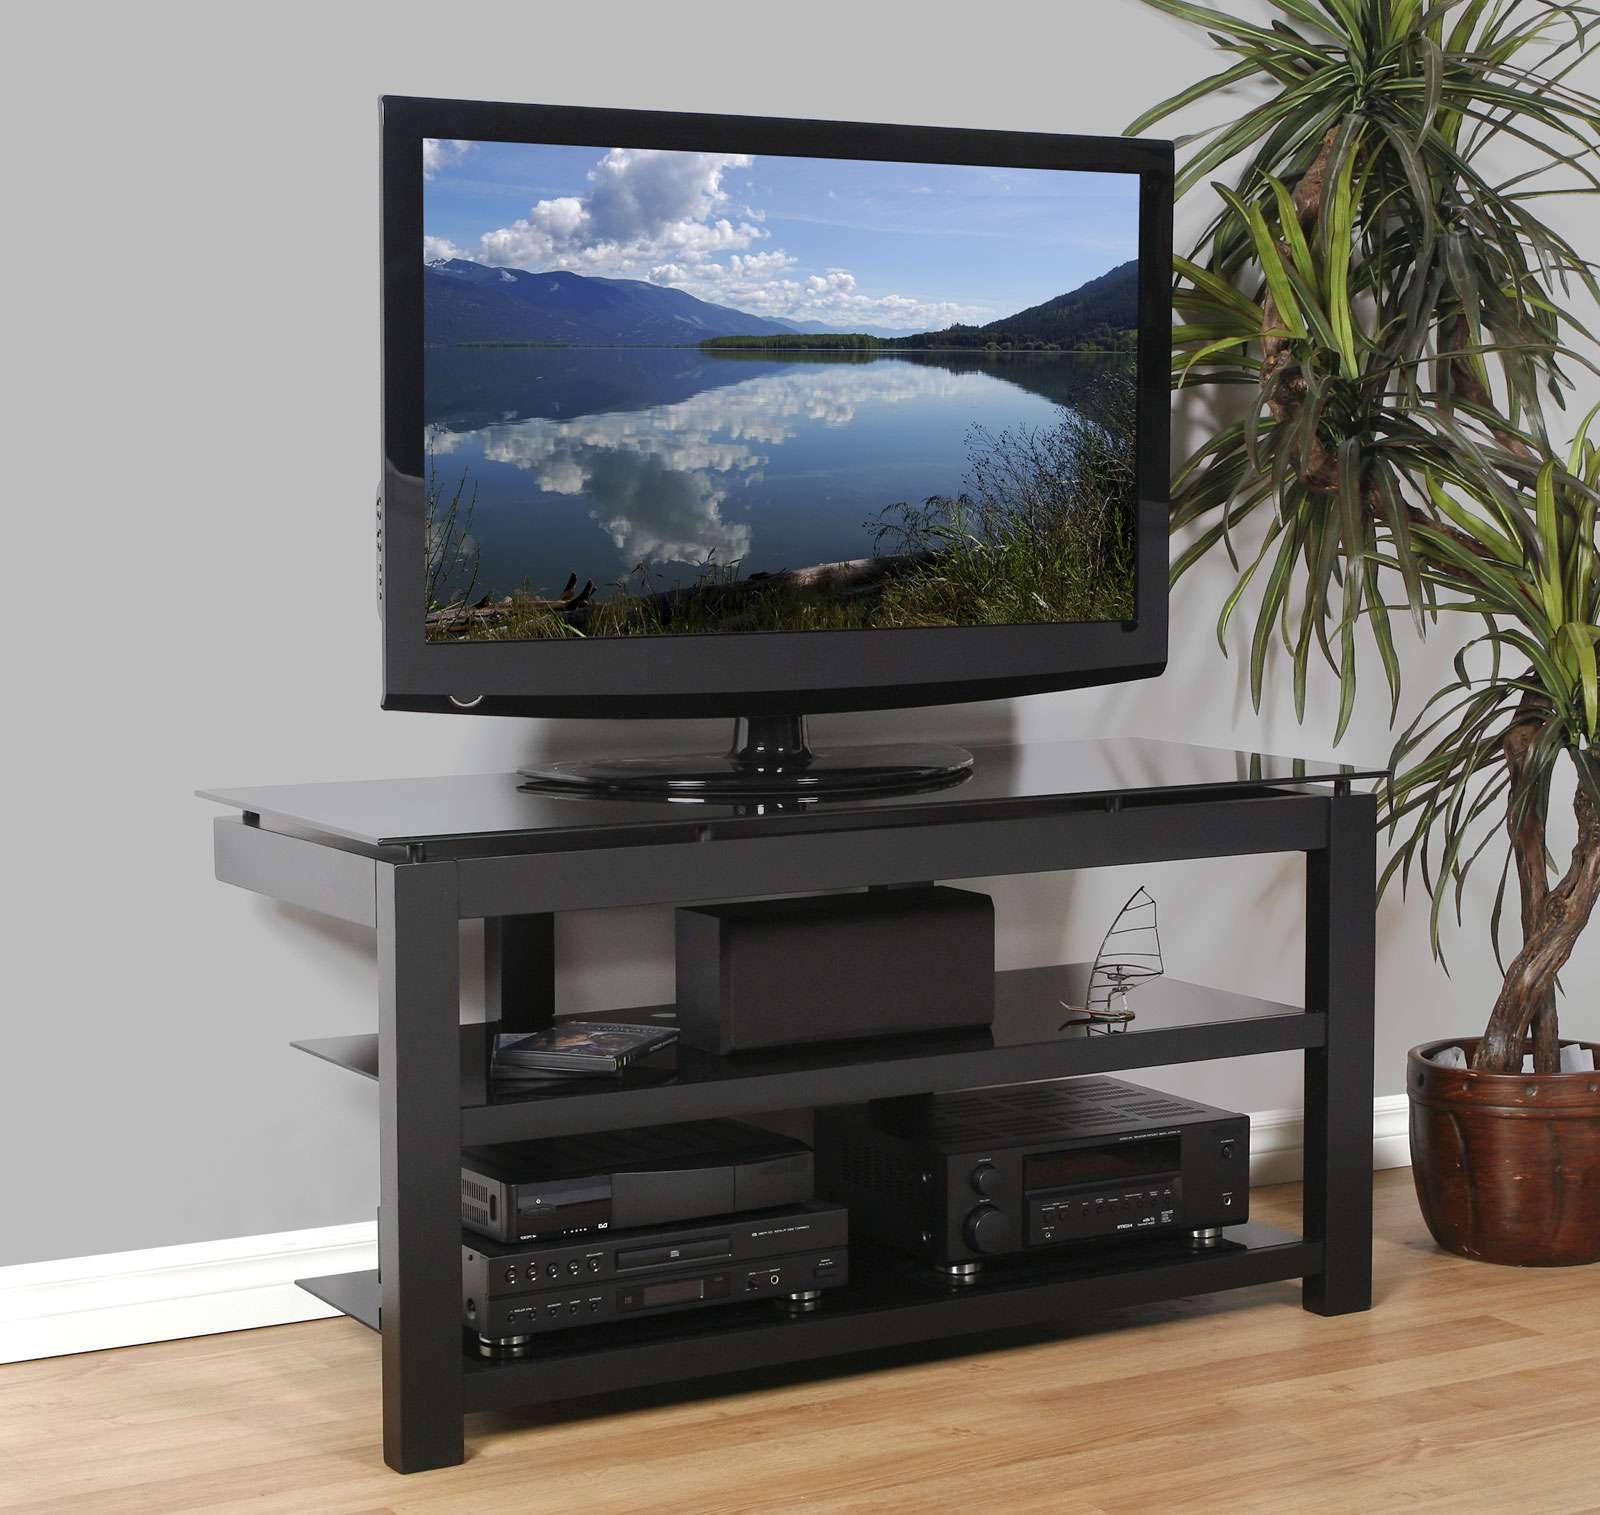 50 Inch Flat Screen Tv Stand – Natural Wood Veneers And Black Inside Wooden Tv Stands For 50 Inch Tv (View 4 of 15)